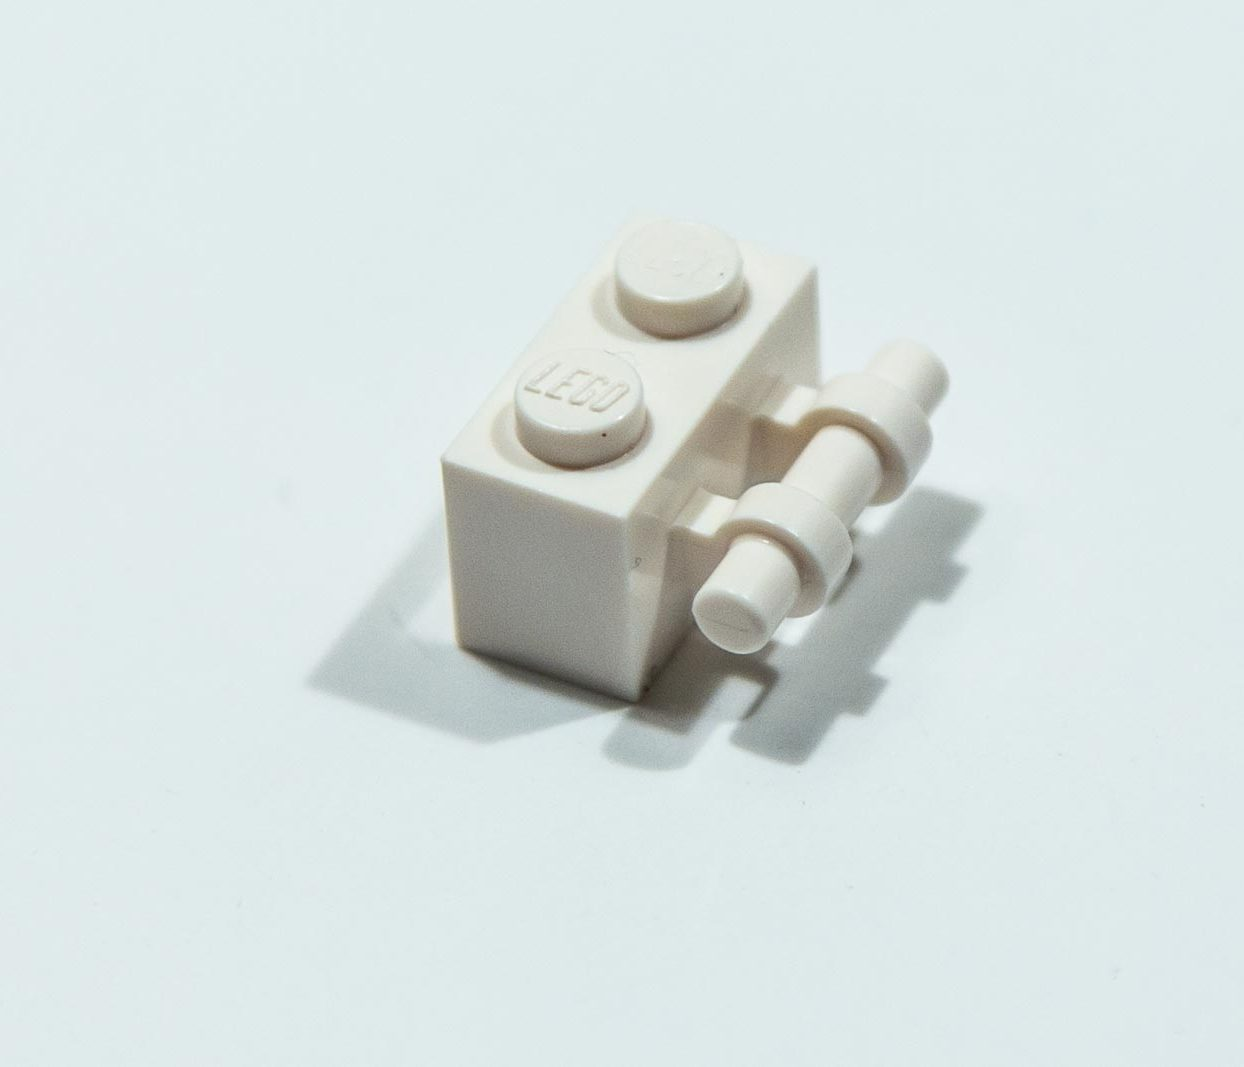 NEW Lego 4140626 30236 1x White 1x2 Brick With Stick